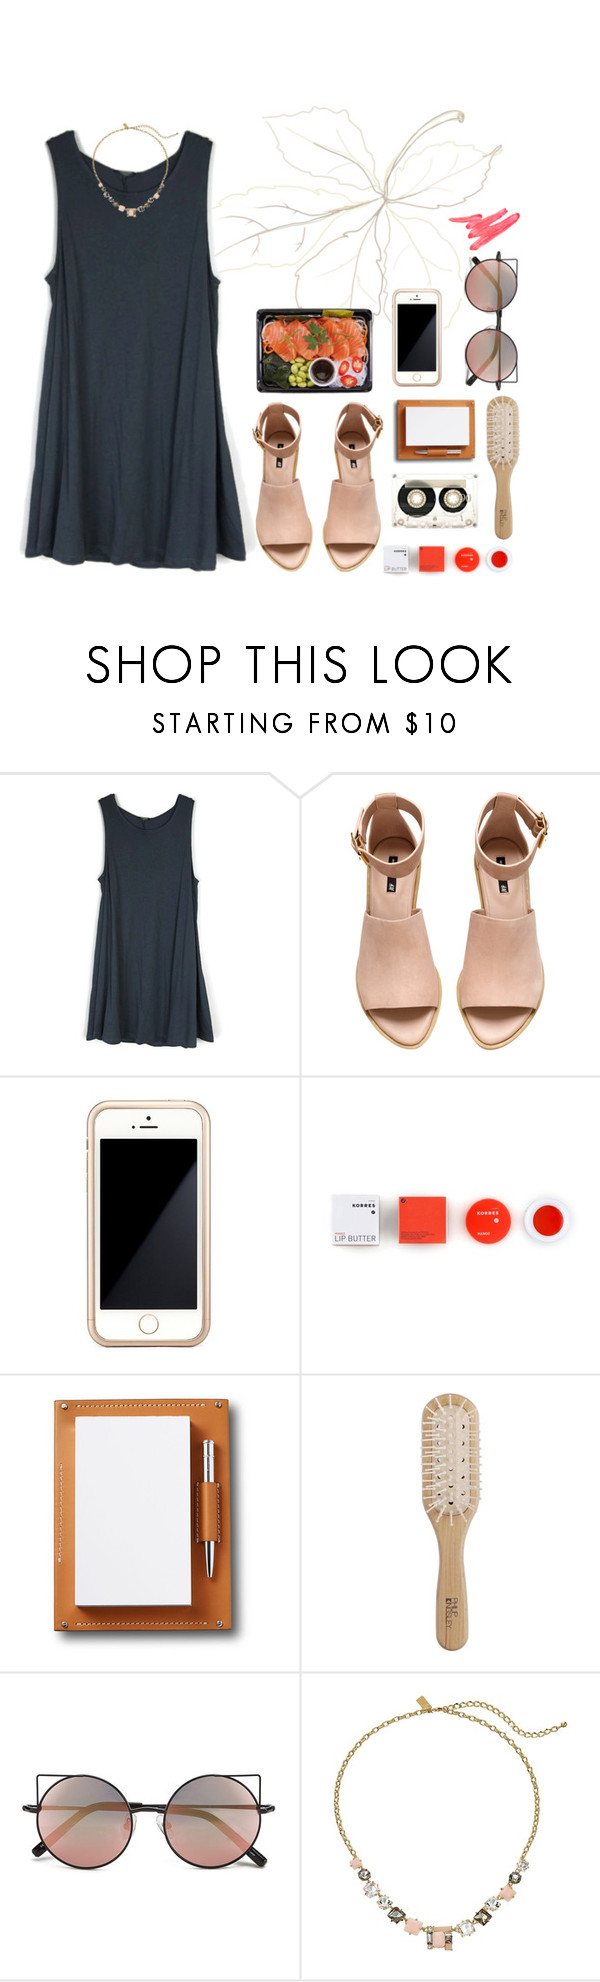 """""""Untitled #42"""" by moisanu-mara ❤ liked on Polyvore featuring H&M, CASSETTE, Squair, Korres, Asprey, Philip Kingsley, Linda Farrow, Kate Spade and Ilia"""